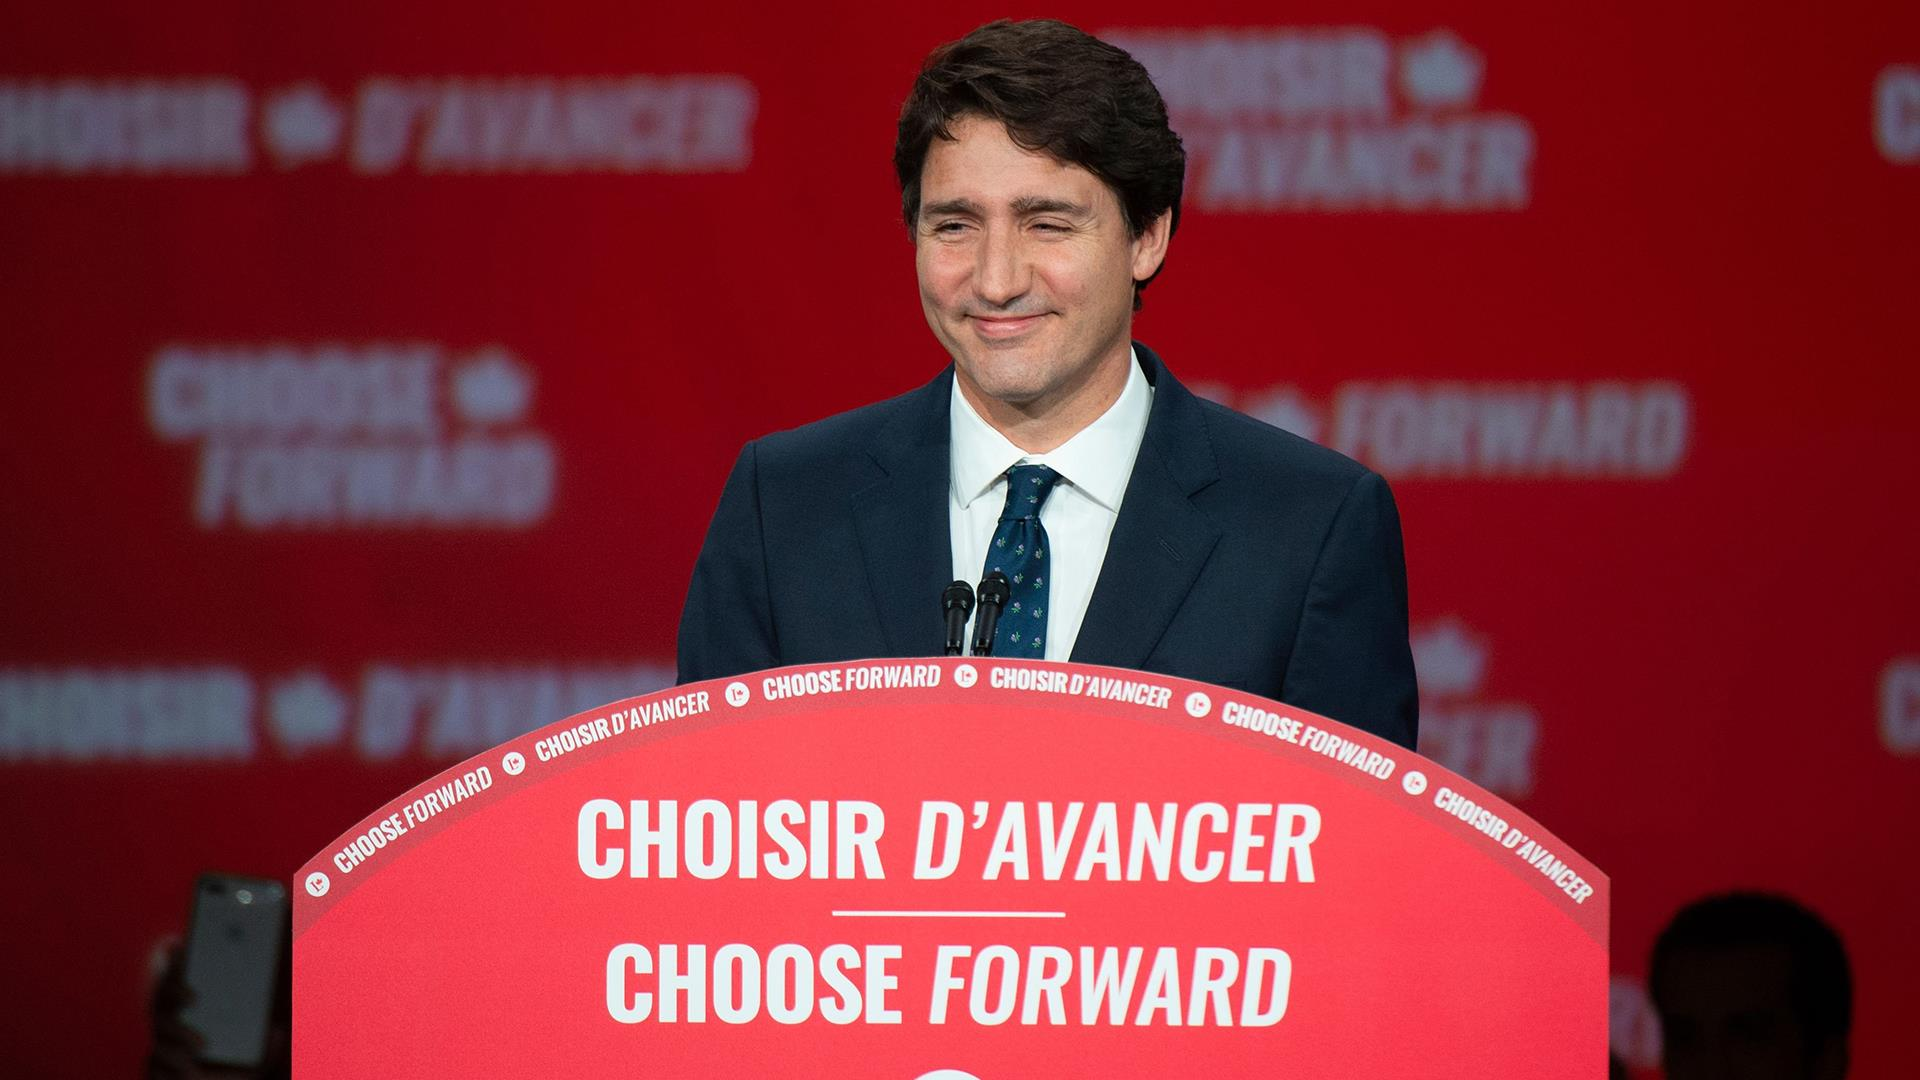 Scandal-scarred Trudeau projected to win re-election as Canada's prime minister